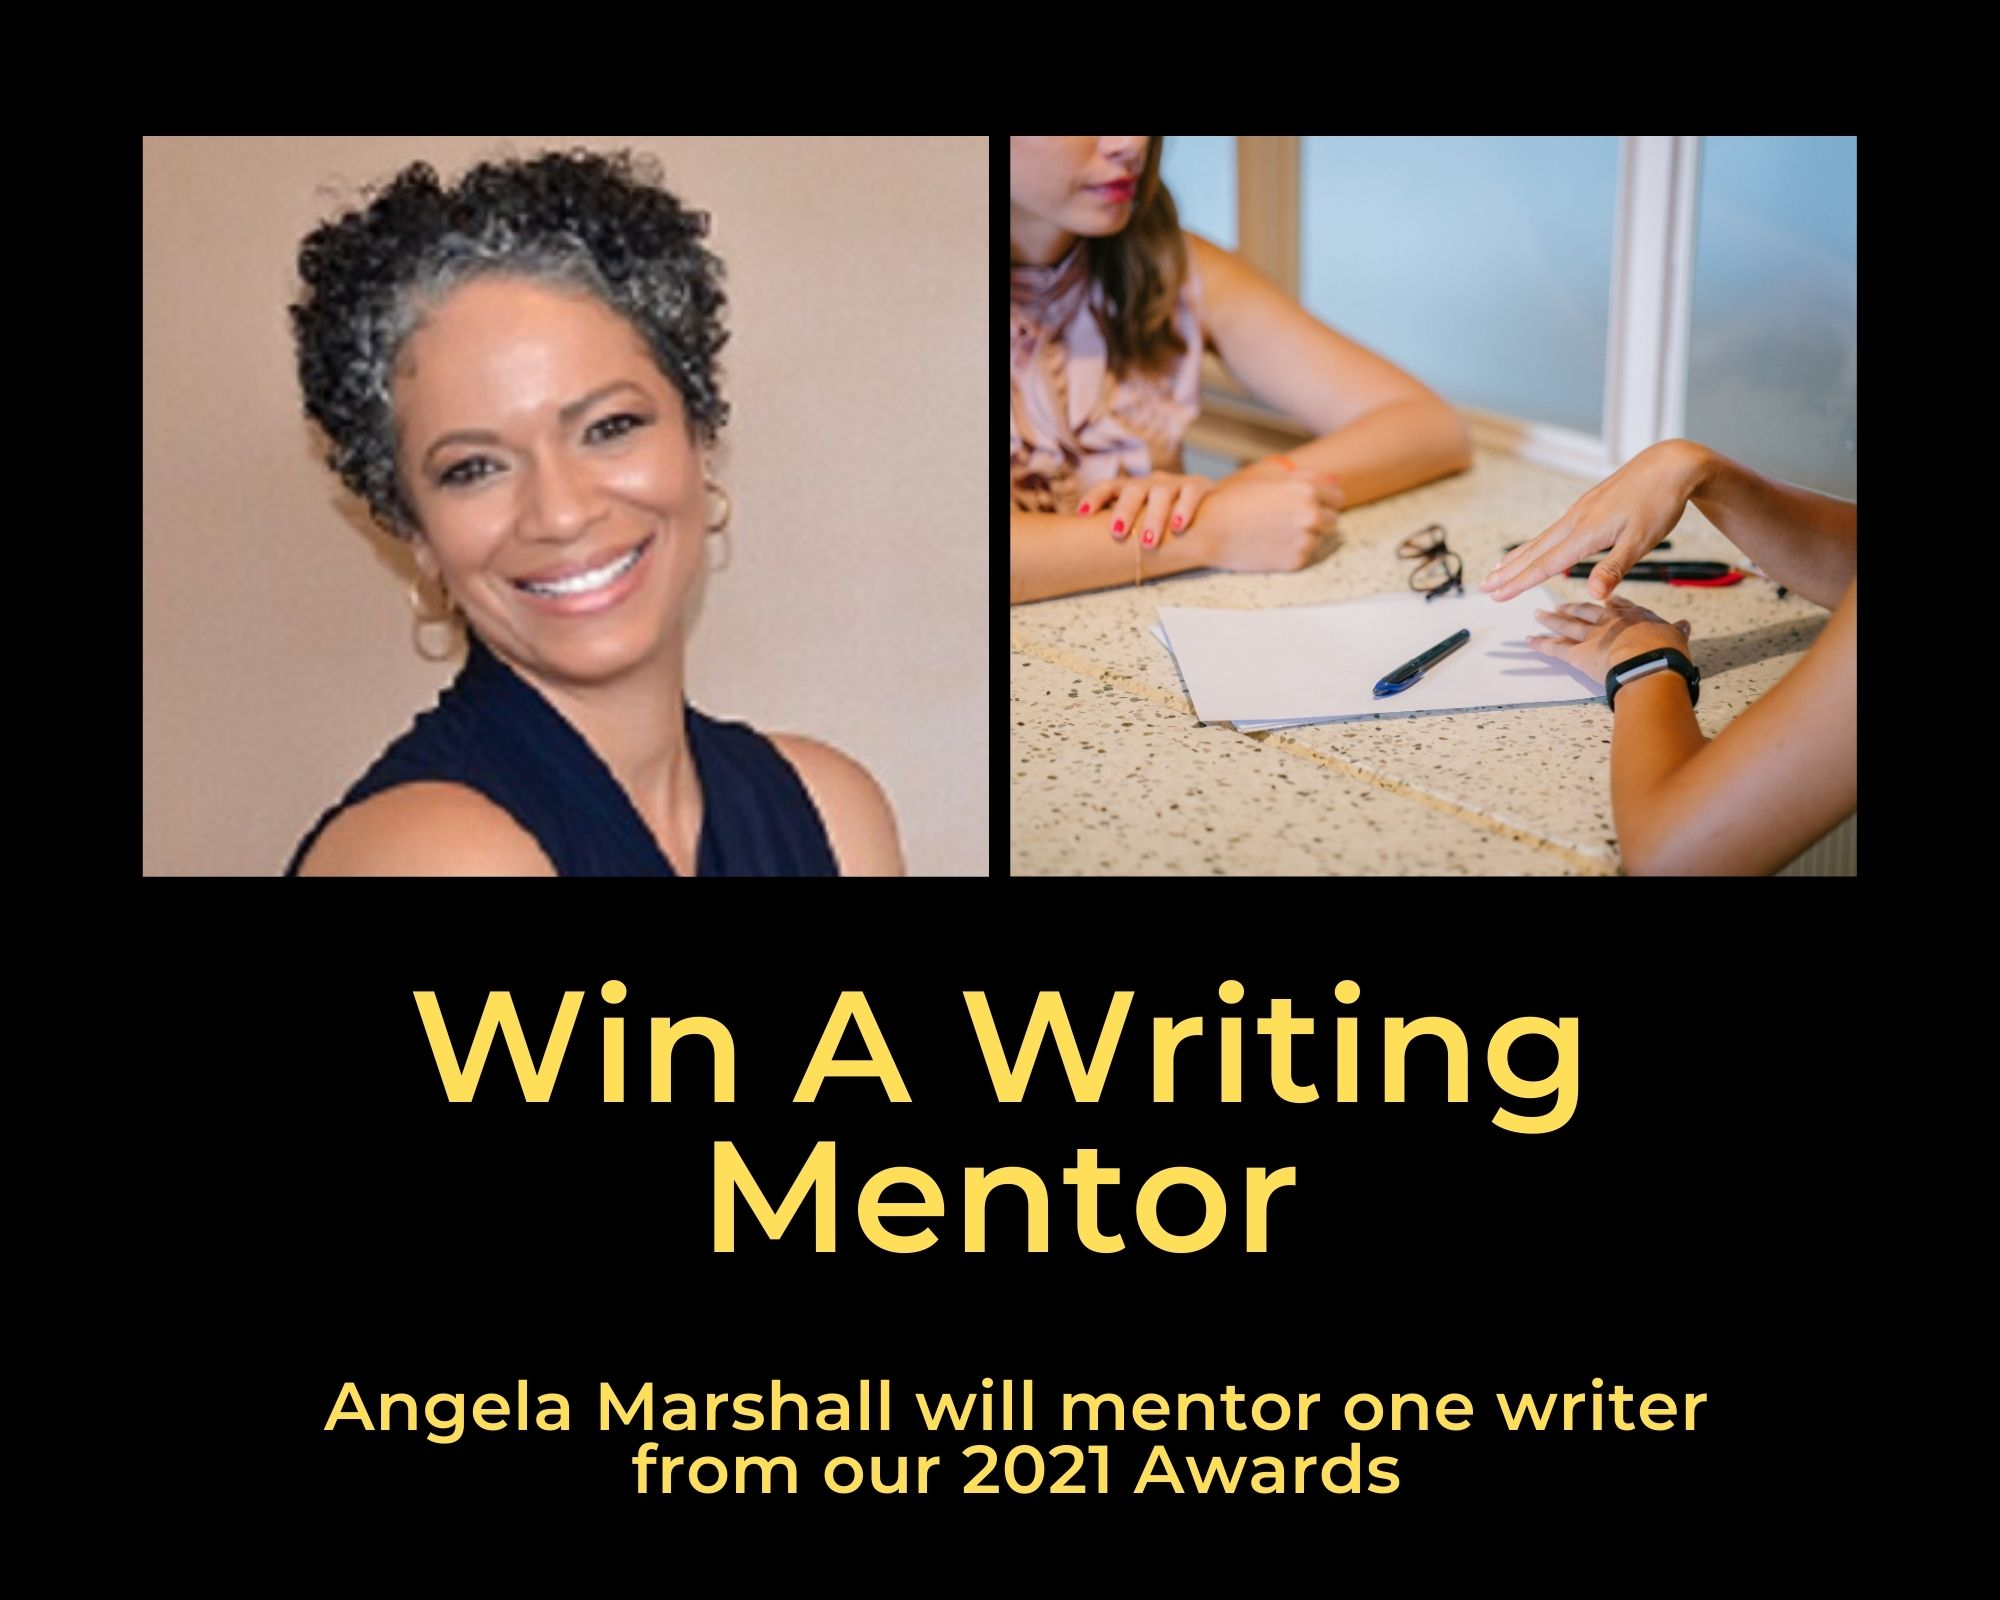 Win A Writing Mentor